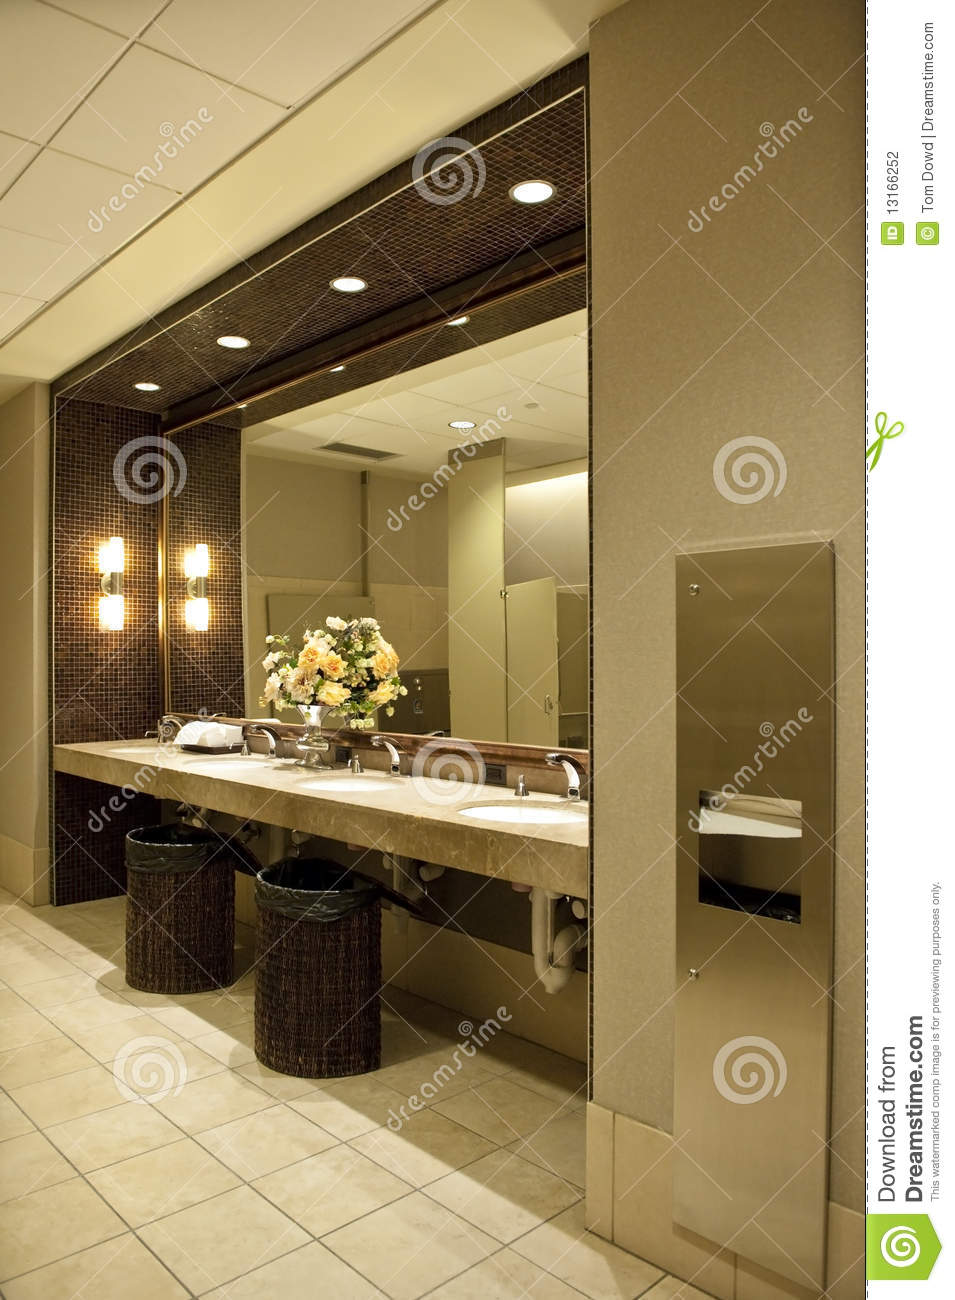 Luxurious public bathroom stock photo Image of modern